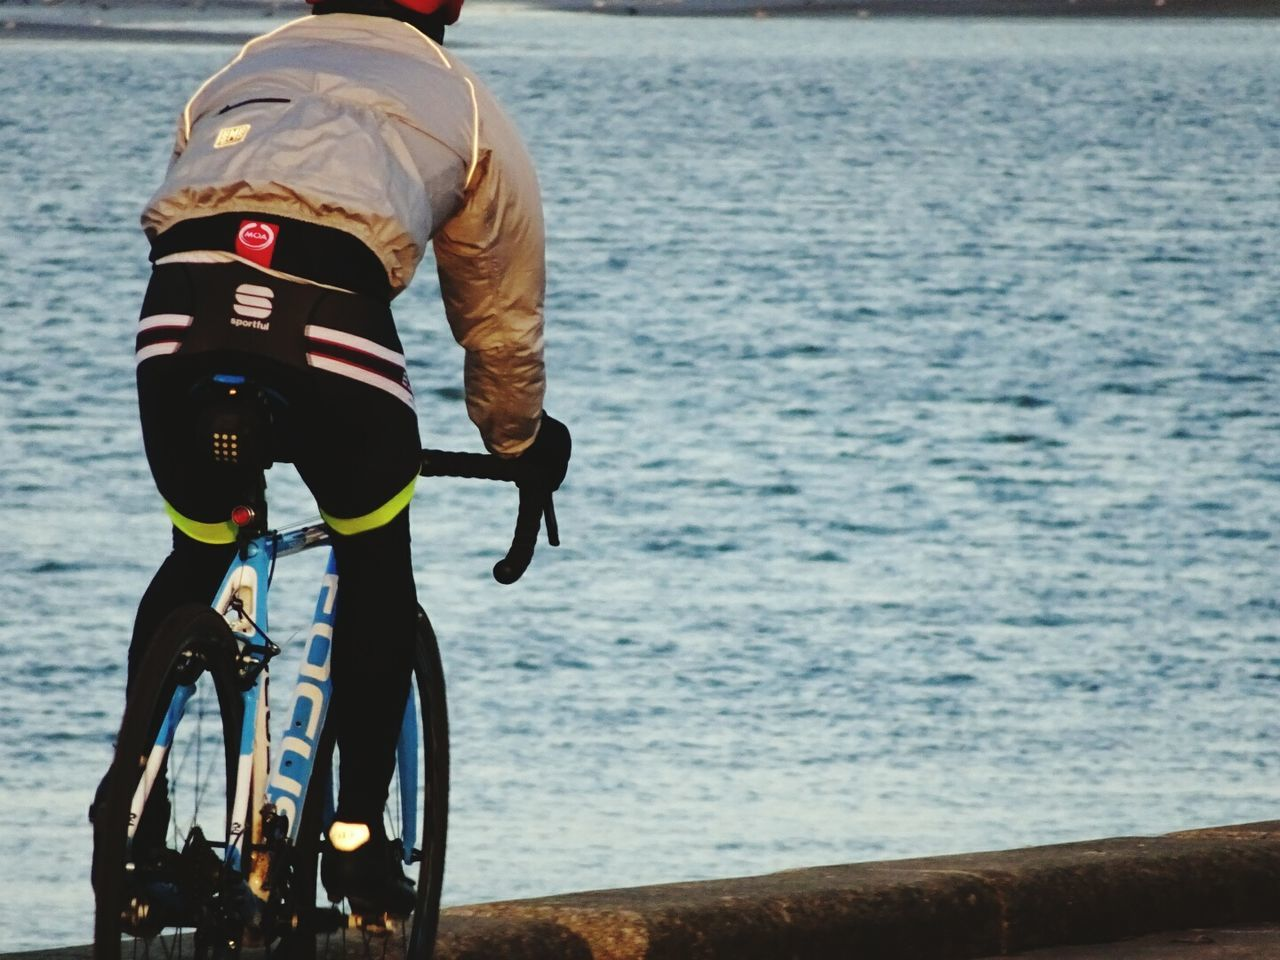 real people, sea, water, one person, lifestyles, bicycle, leisure activity, rear view, outdoors, men, cycling, day, riding, full length, nature, horizon over water, sky, people